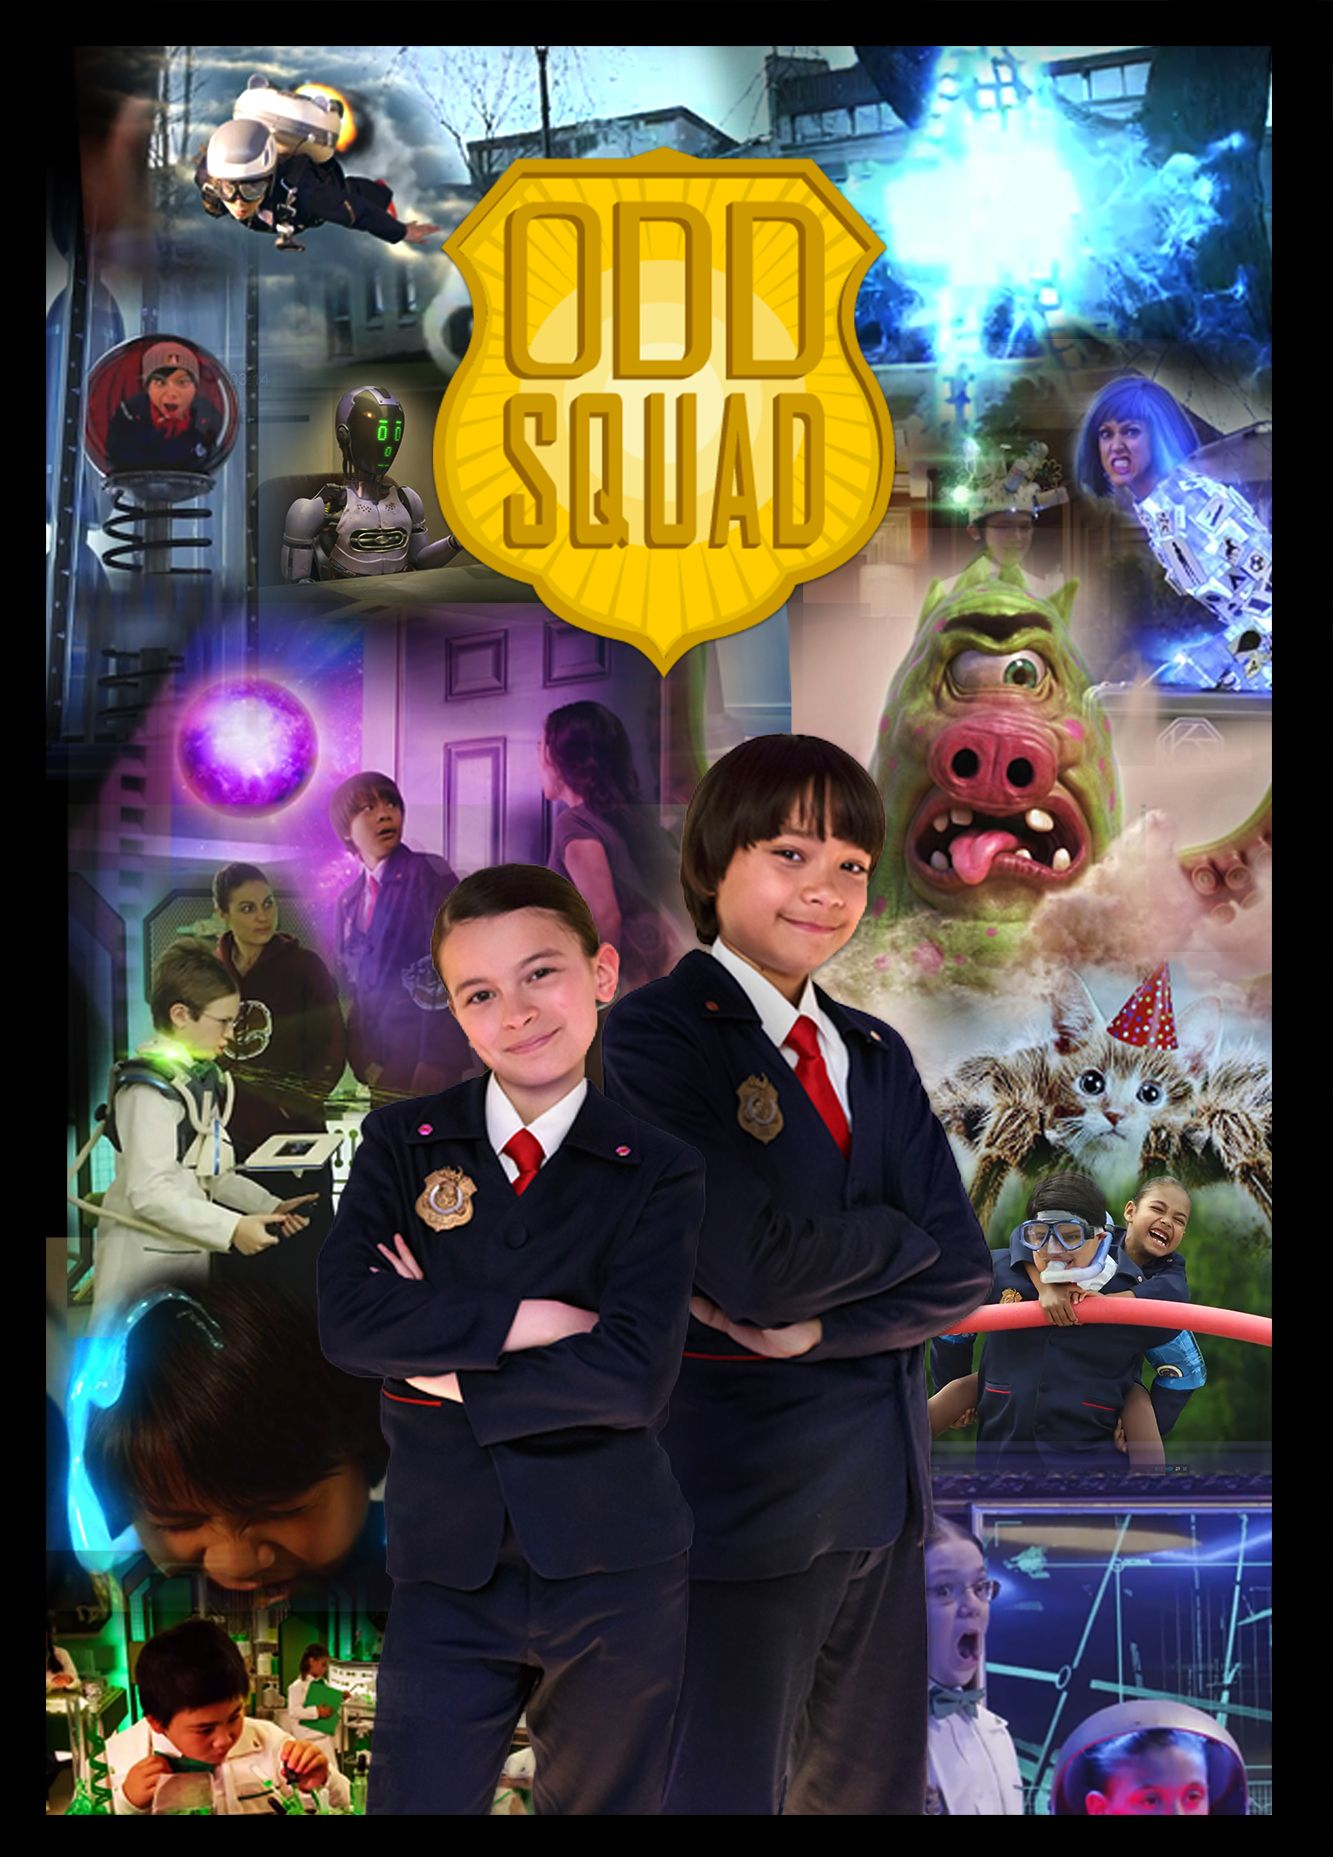 PBS Odd Squad Continues Shows the Cool Side of Math While